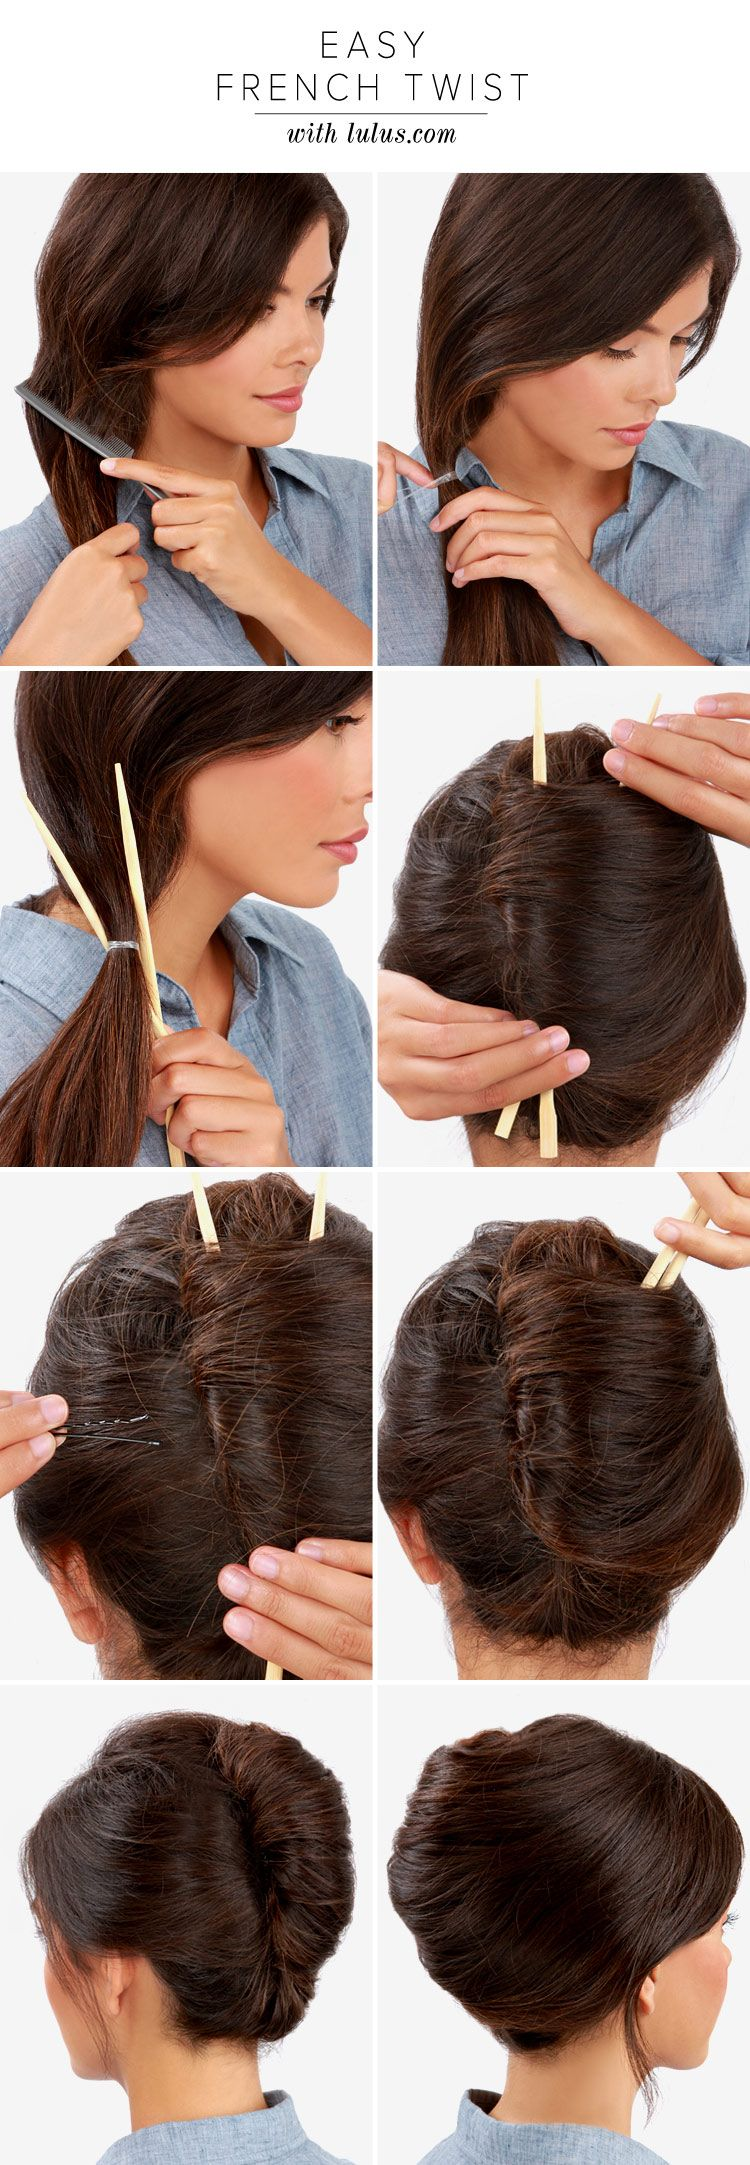 Lulus How To Easy French Twist Hair Inspiration Pinterest